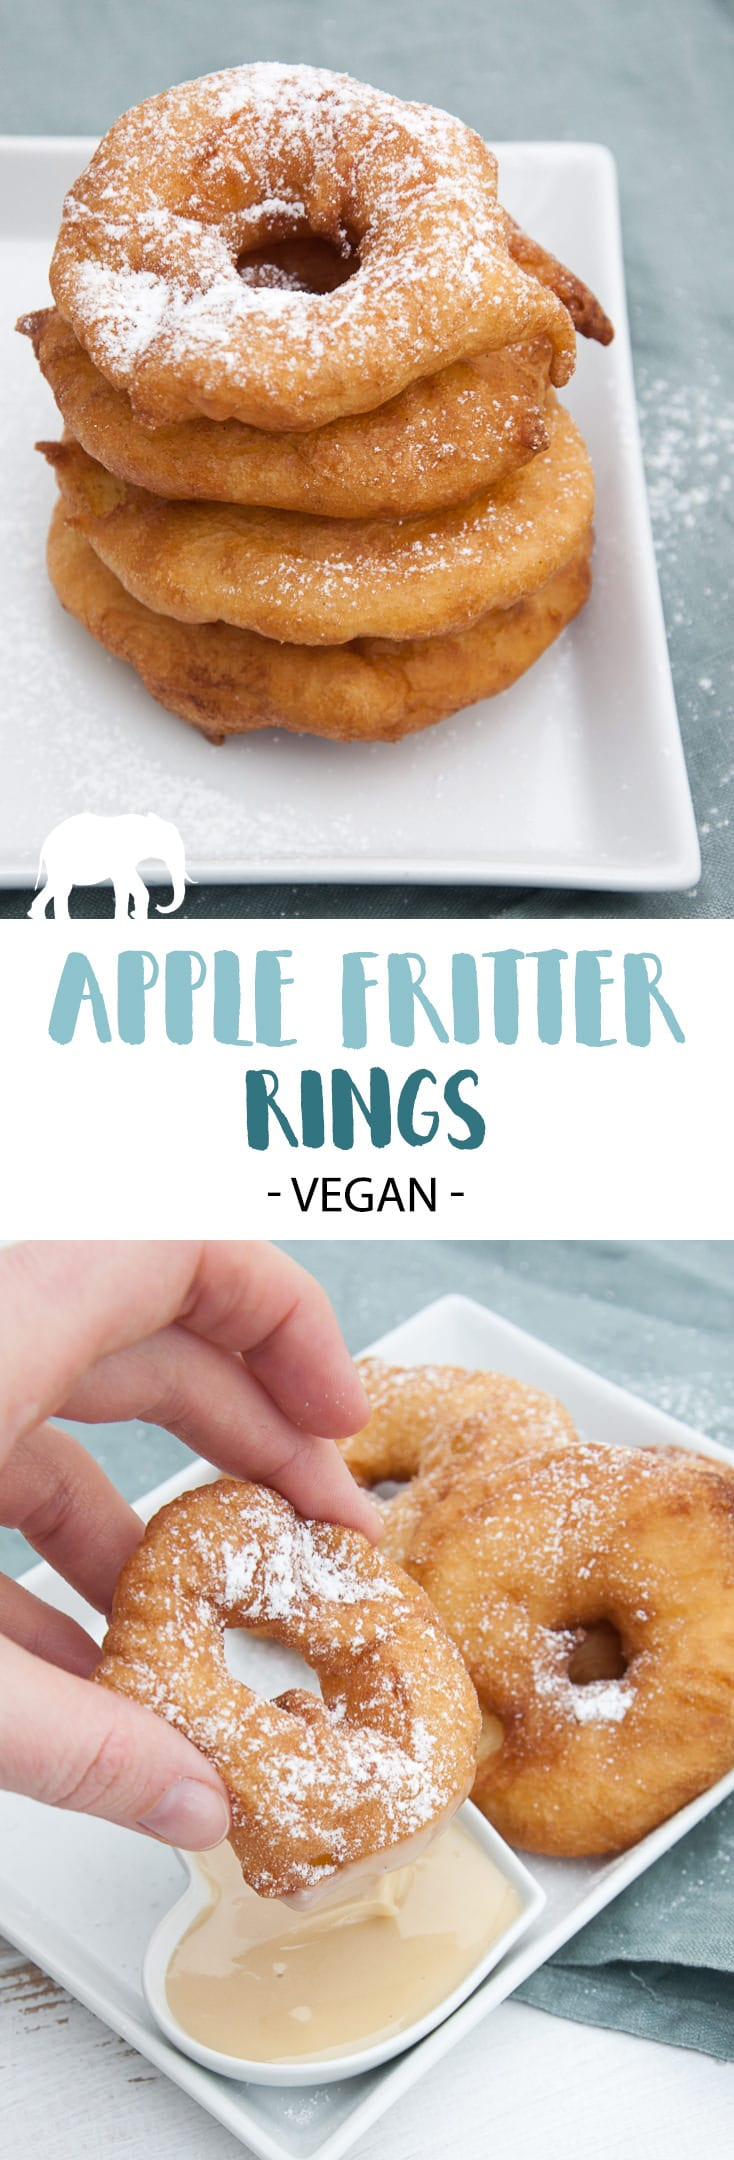 Vegan Apple Fritter Rings | ElephantasticVegan.com #vegan #apple #fritter #dessert #sweet